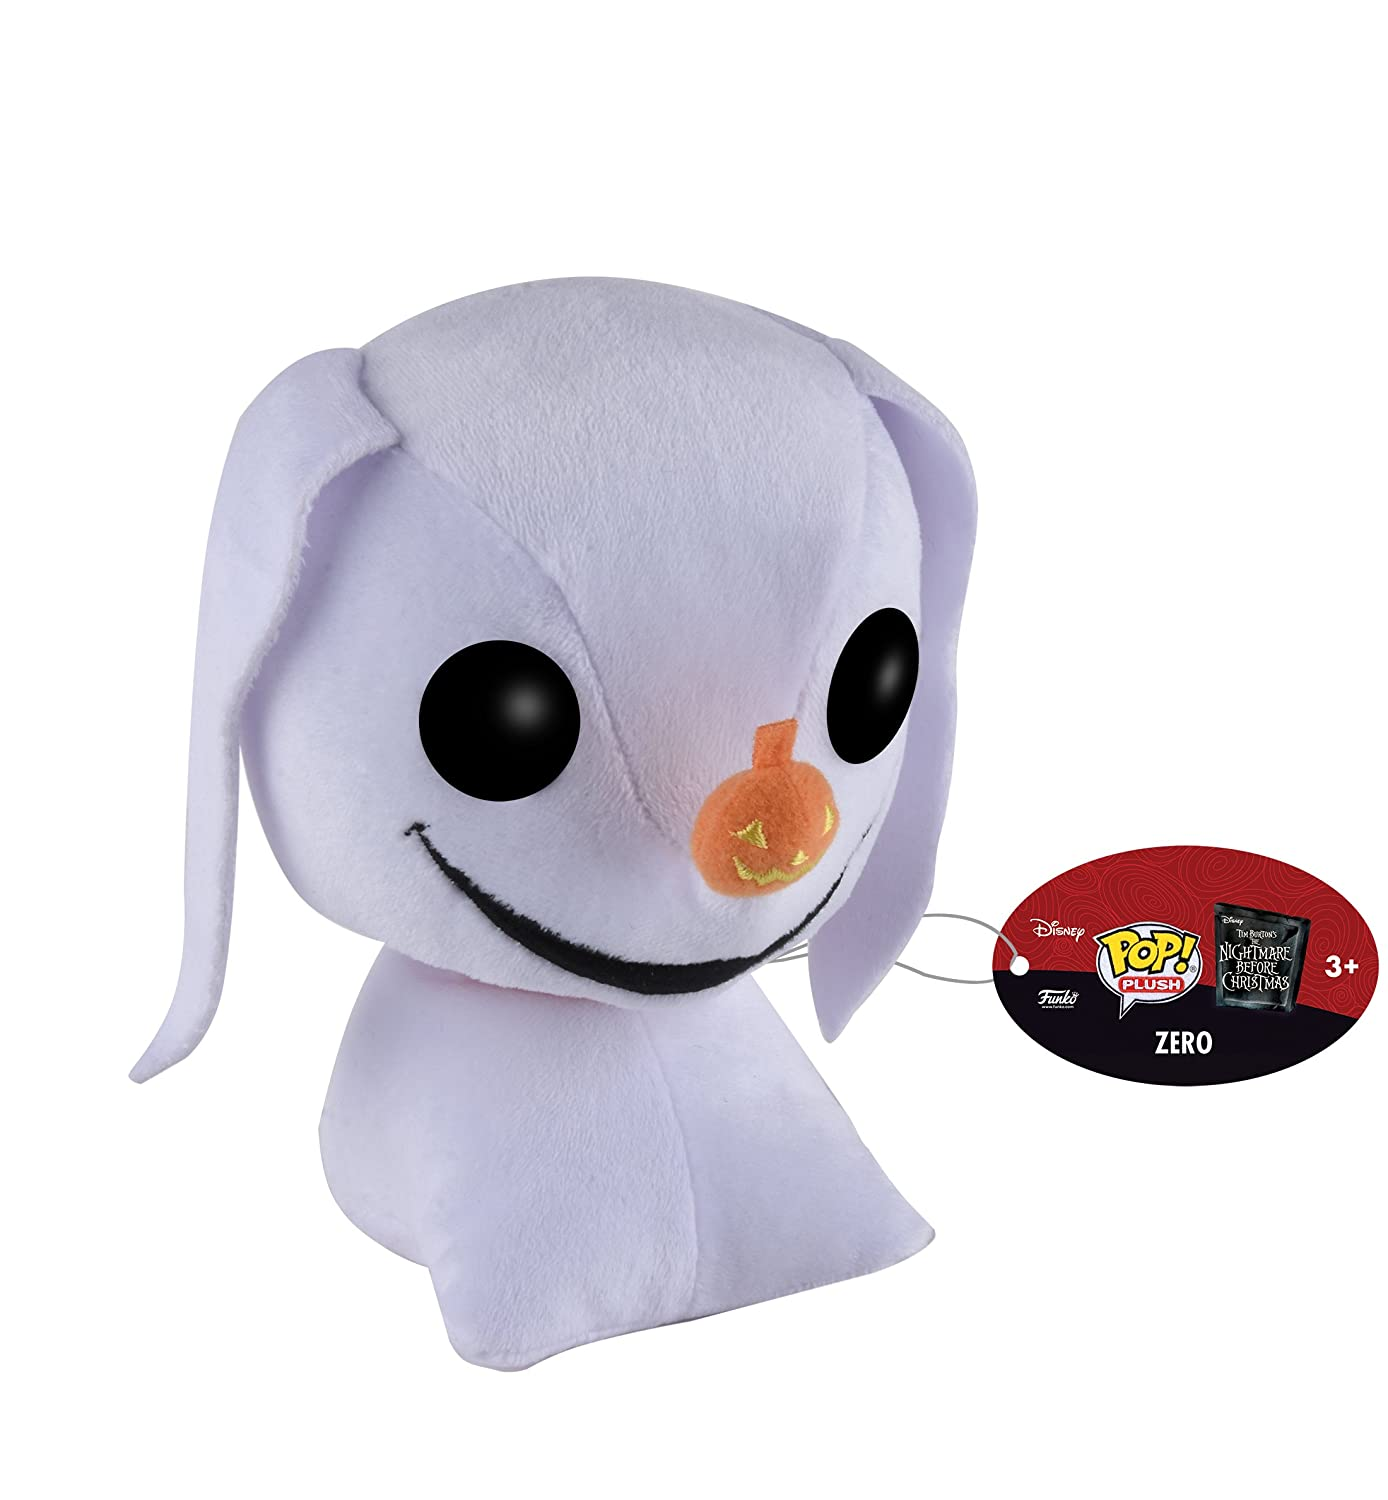 Amazon.com: Funko POP Plush: The Nightmare Before Christmas - Zero ...